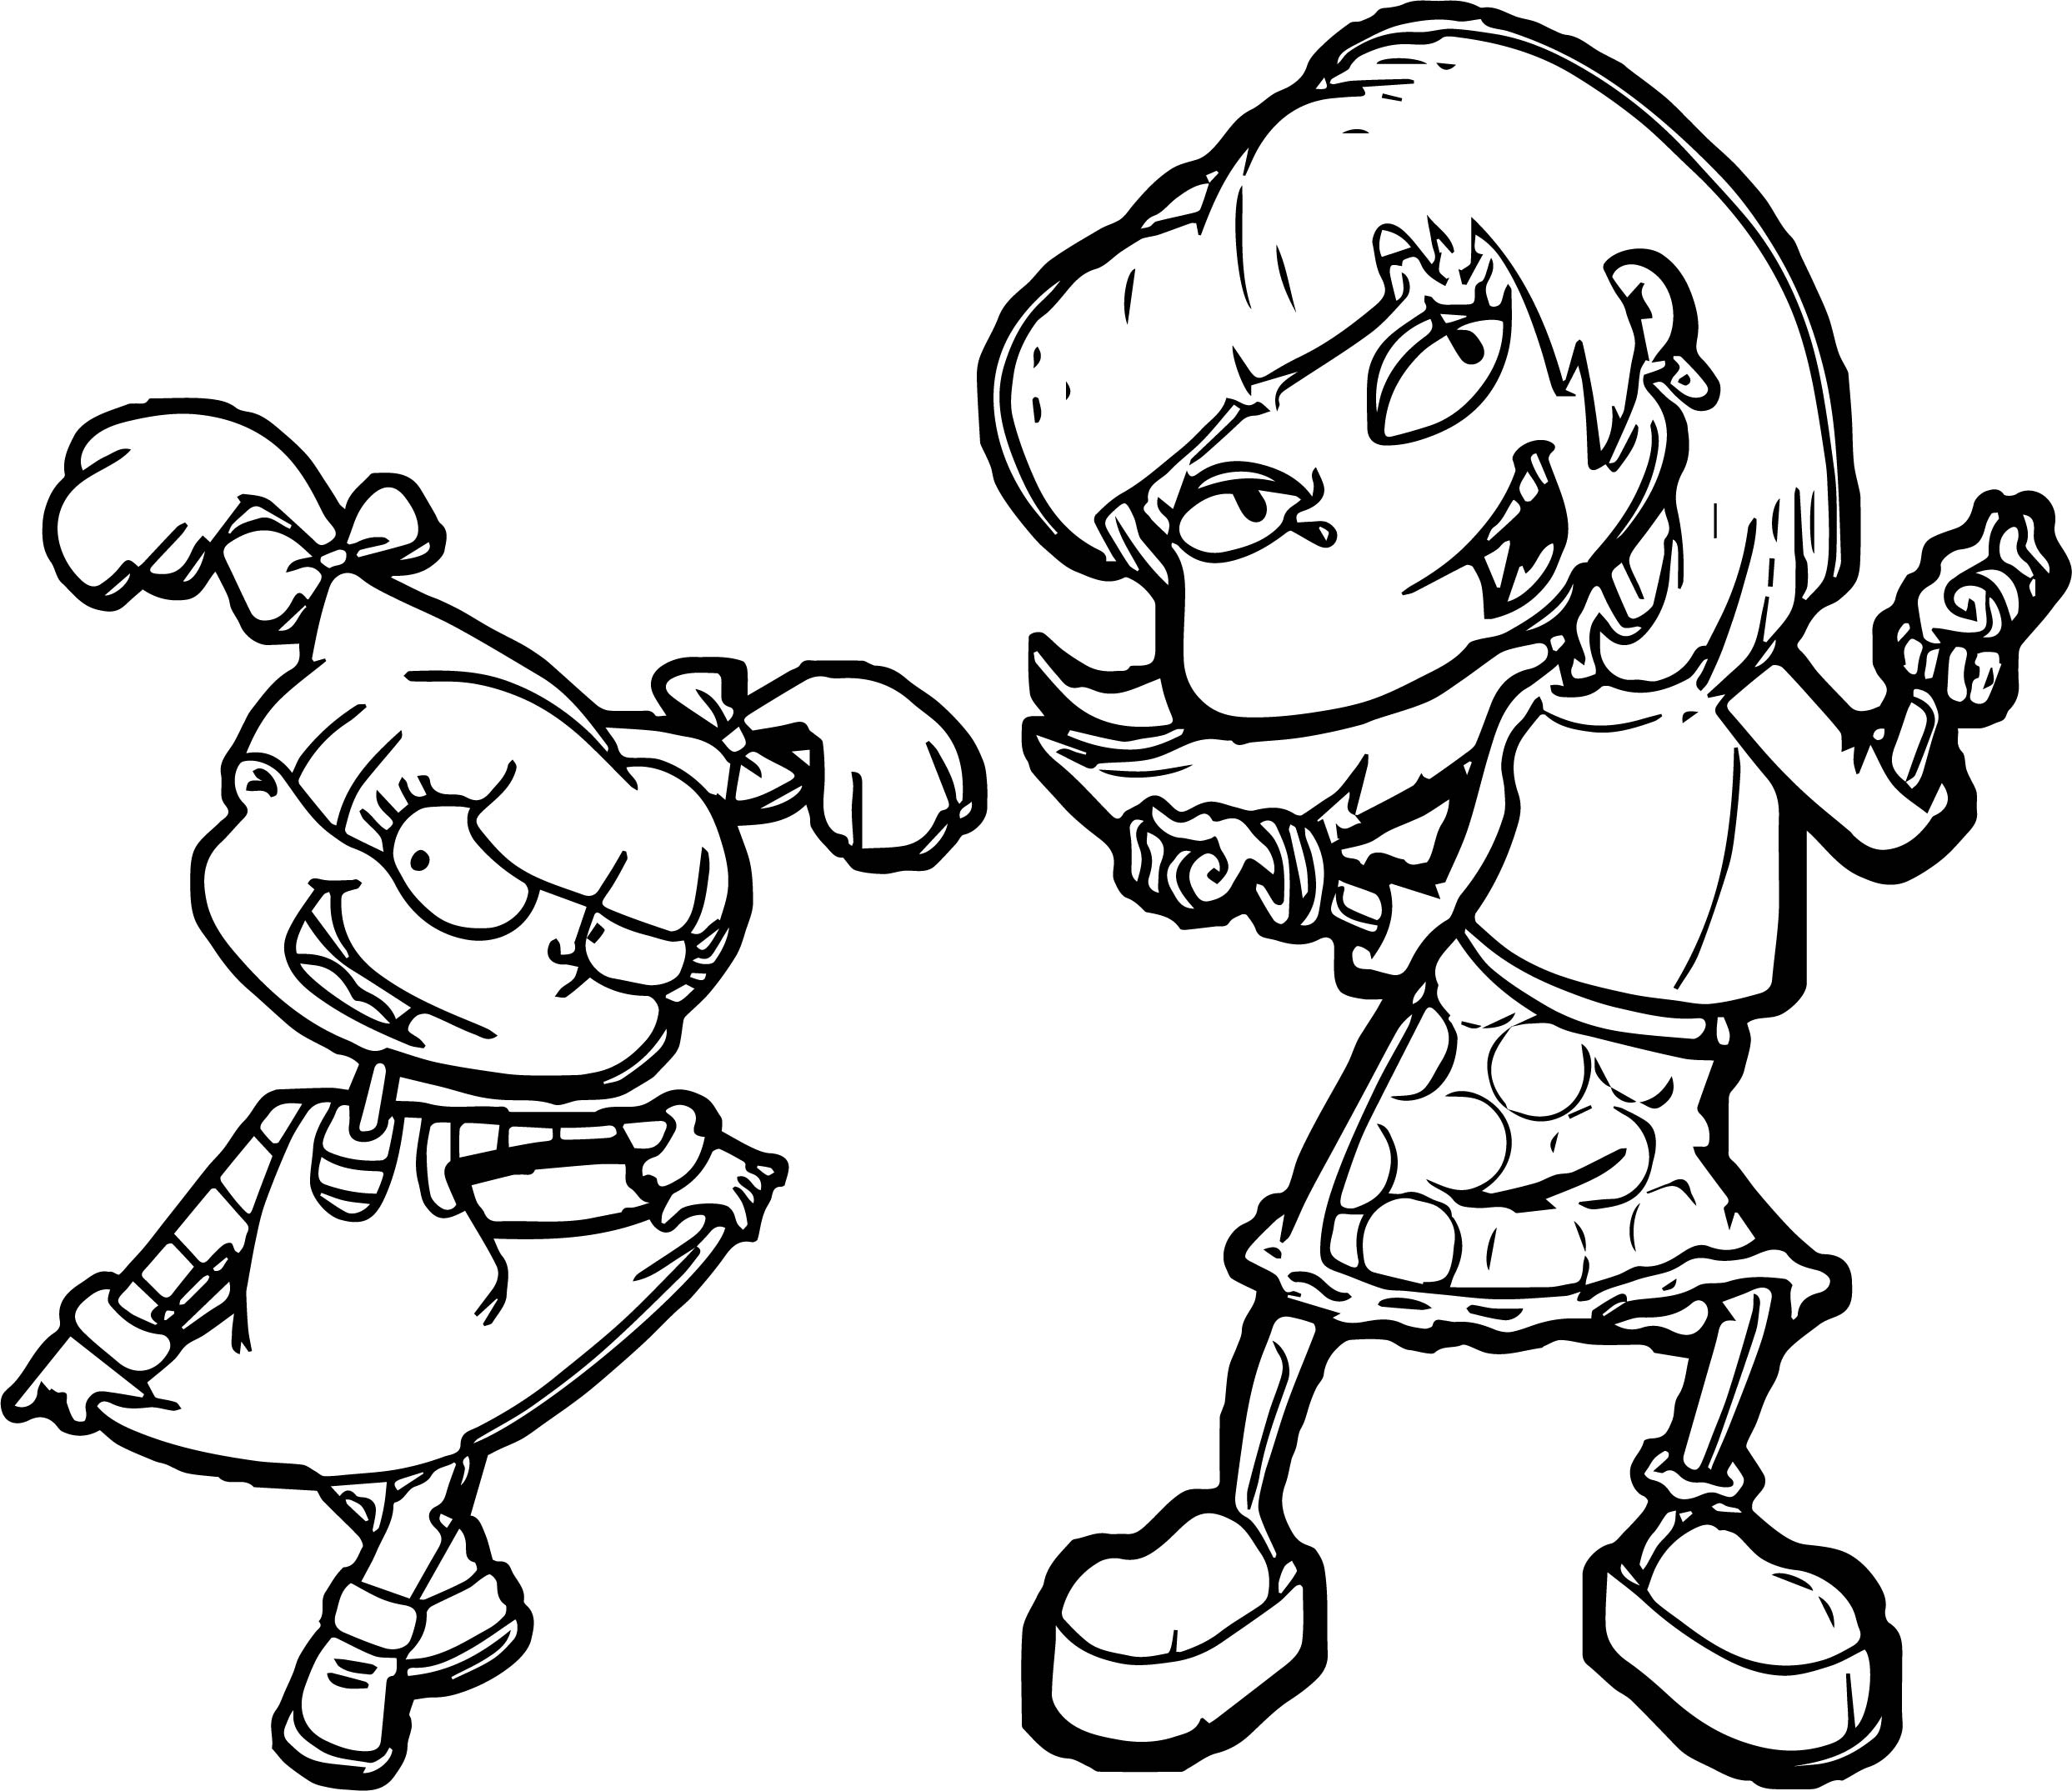 coloring pages of pickles - angelica pickles coloring page